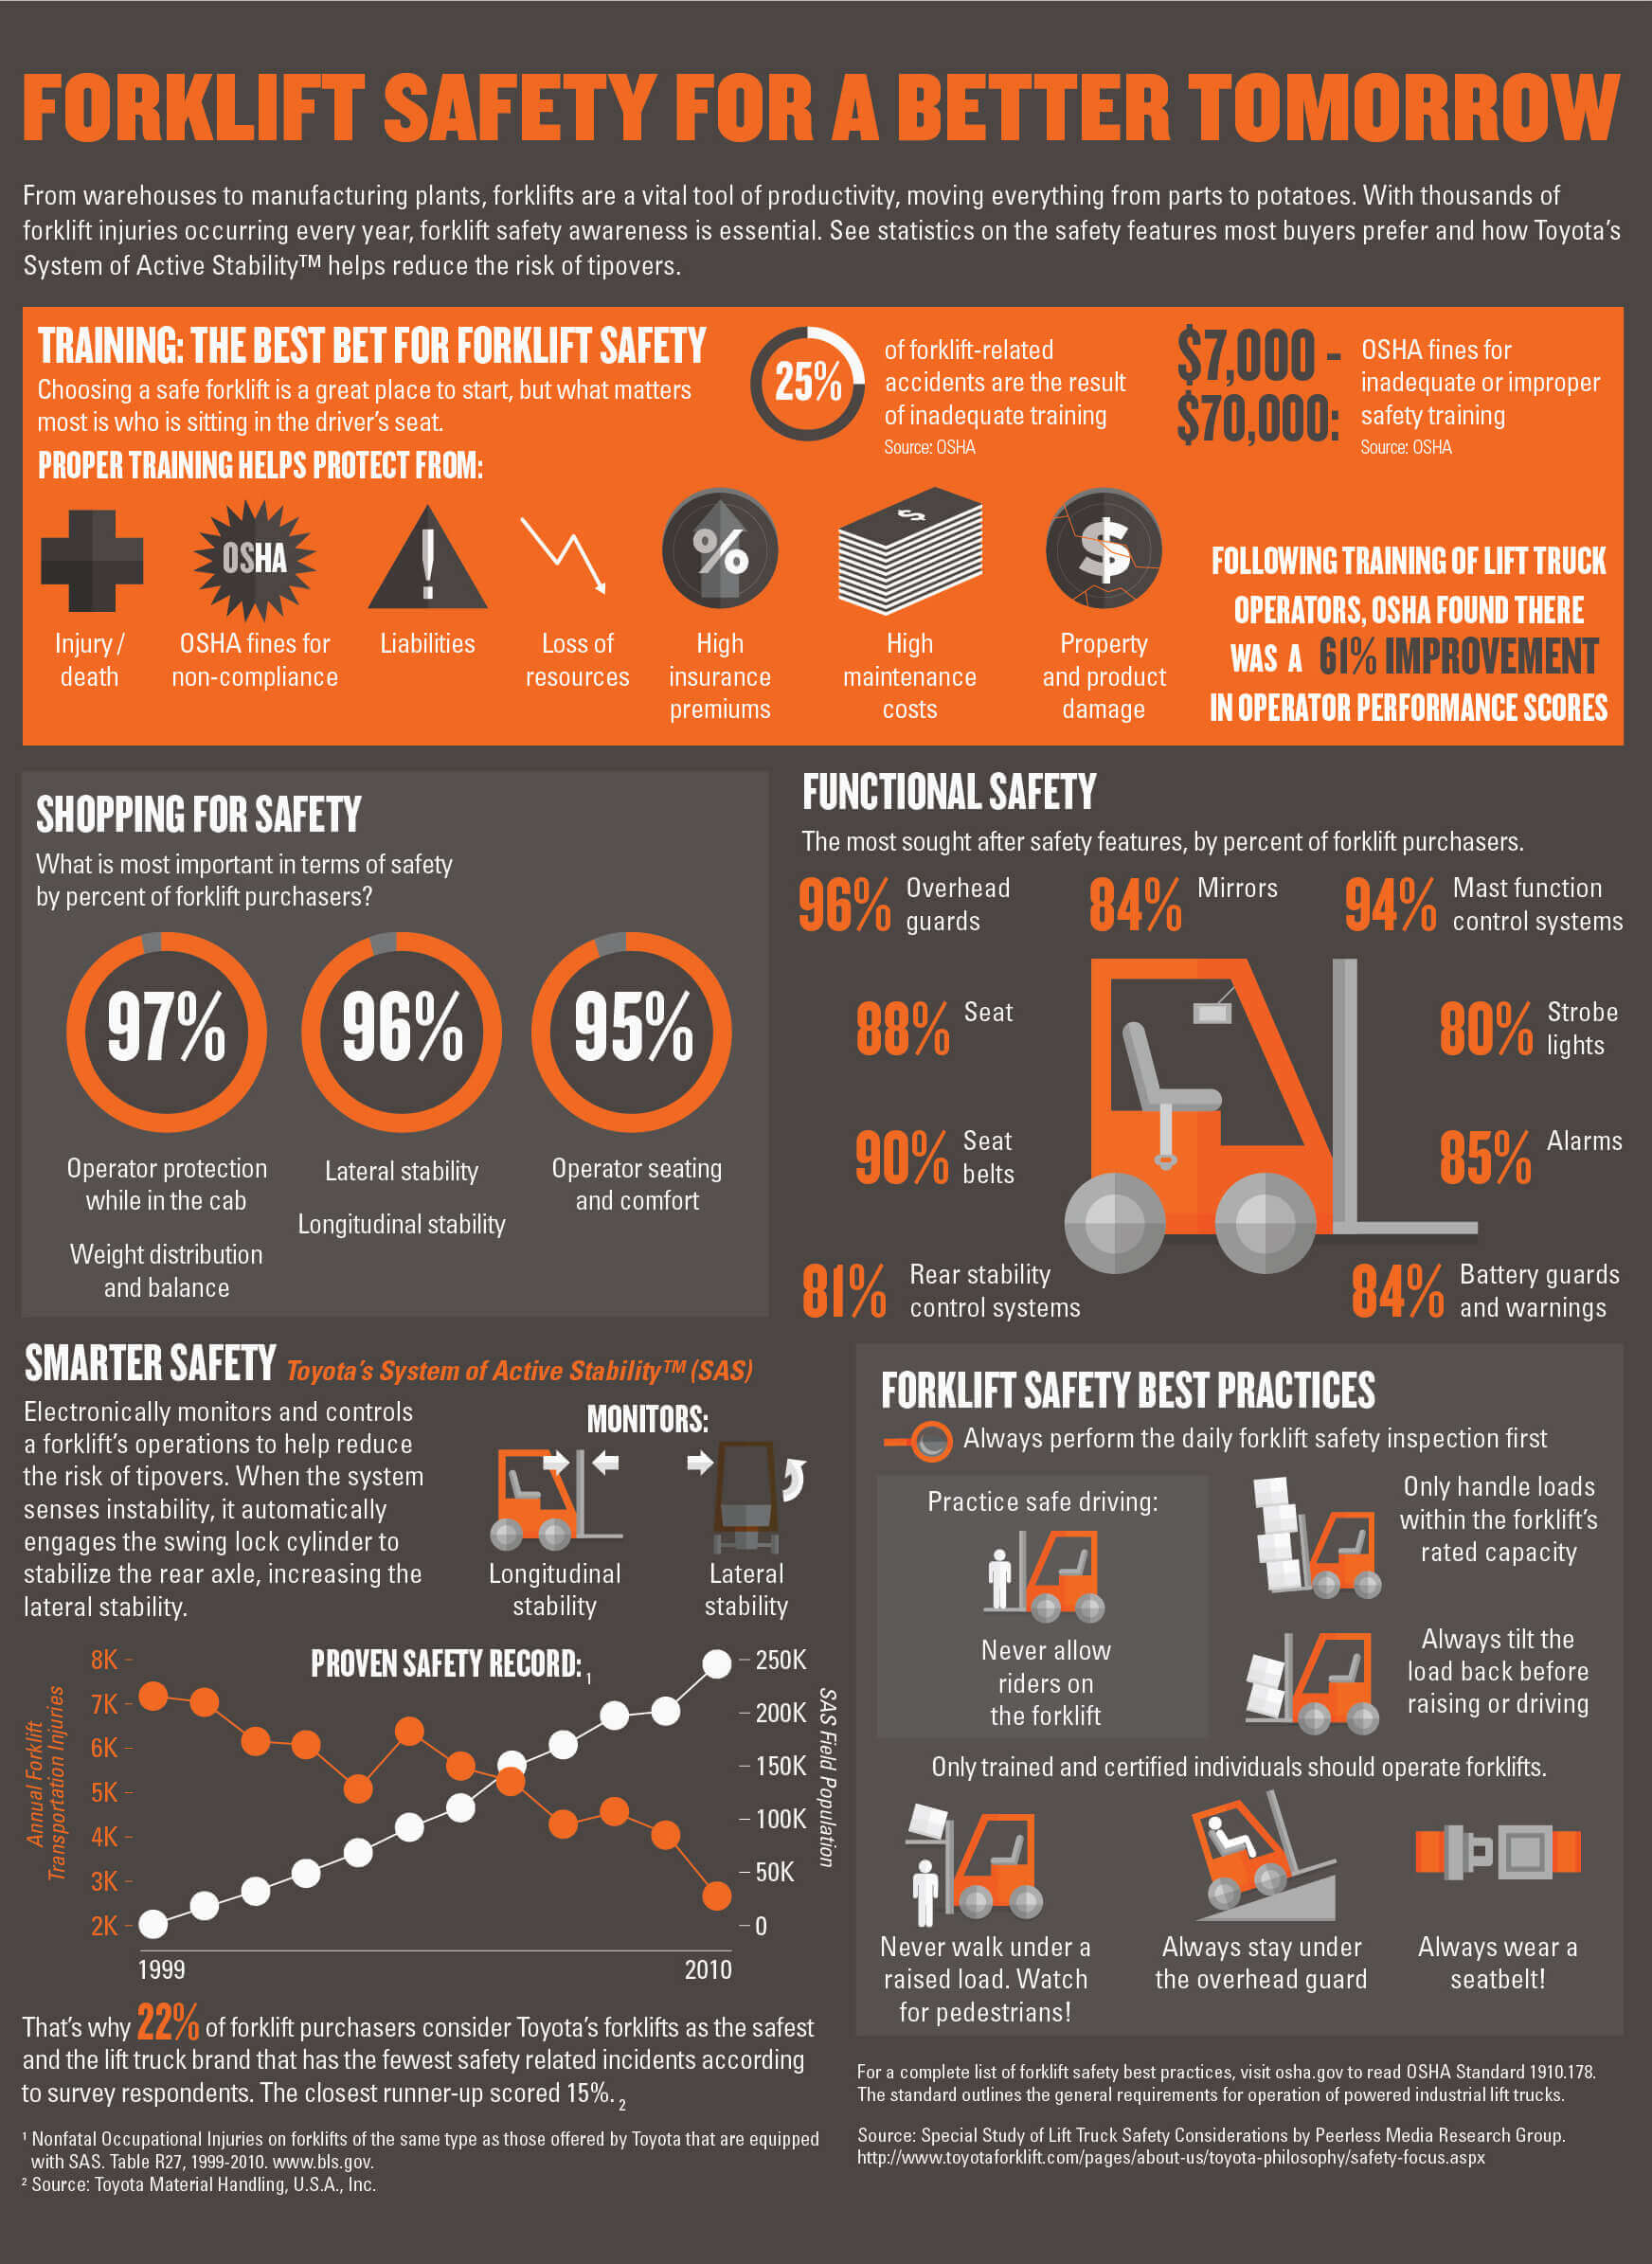 Forklift Safety Statistics Infographic